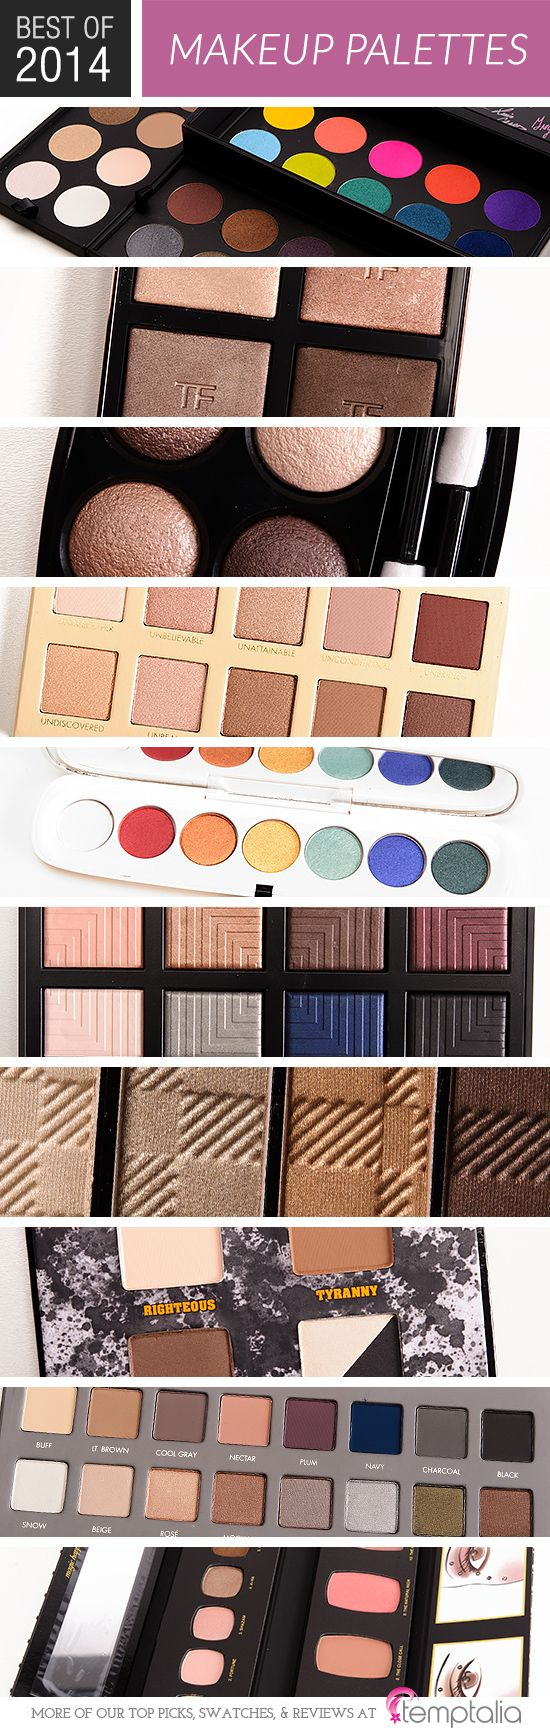 """Competition was stiff! I reviewed around 150 quads, palettes, and duos this year (there are actually 227 posts filed under """"makeup palettes,"""" but this cate"""